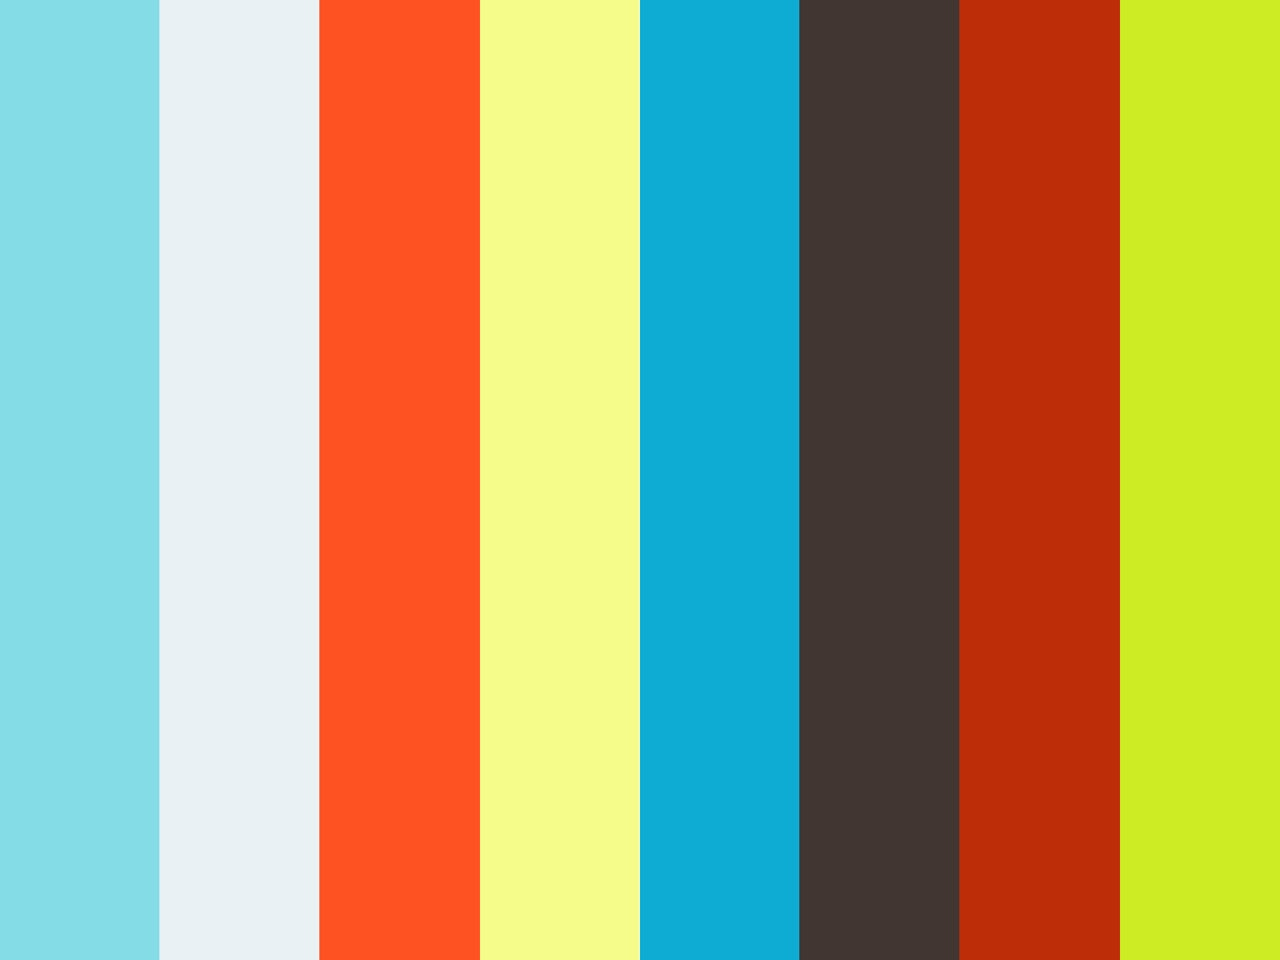 FlashMob Pillowfight in Kaiserslautern